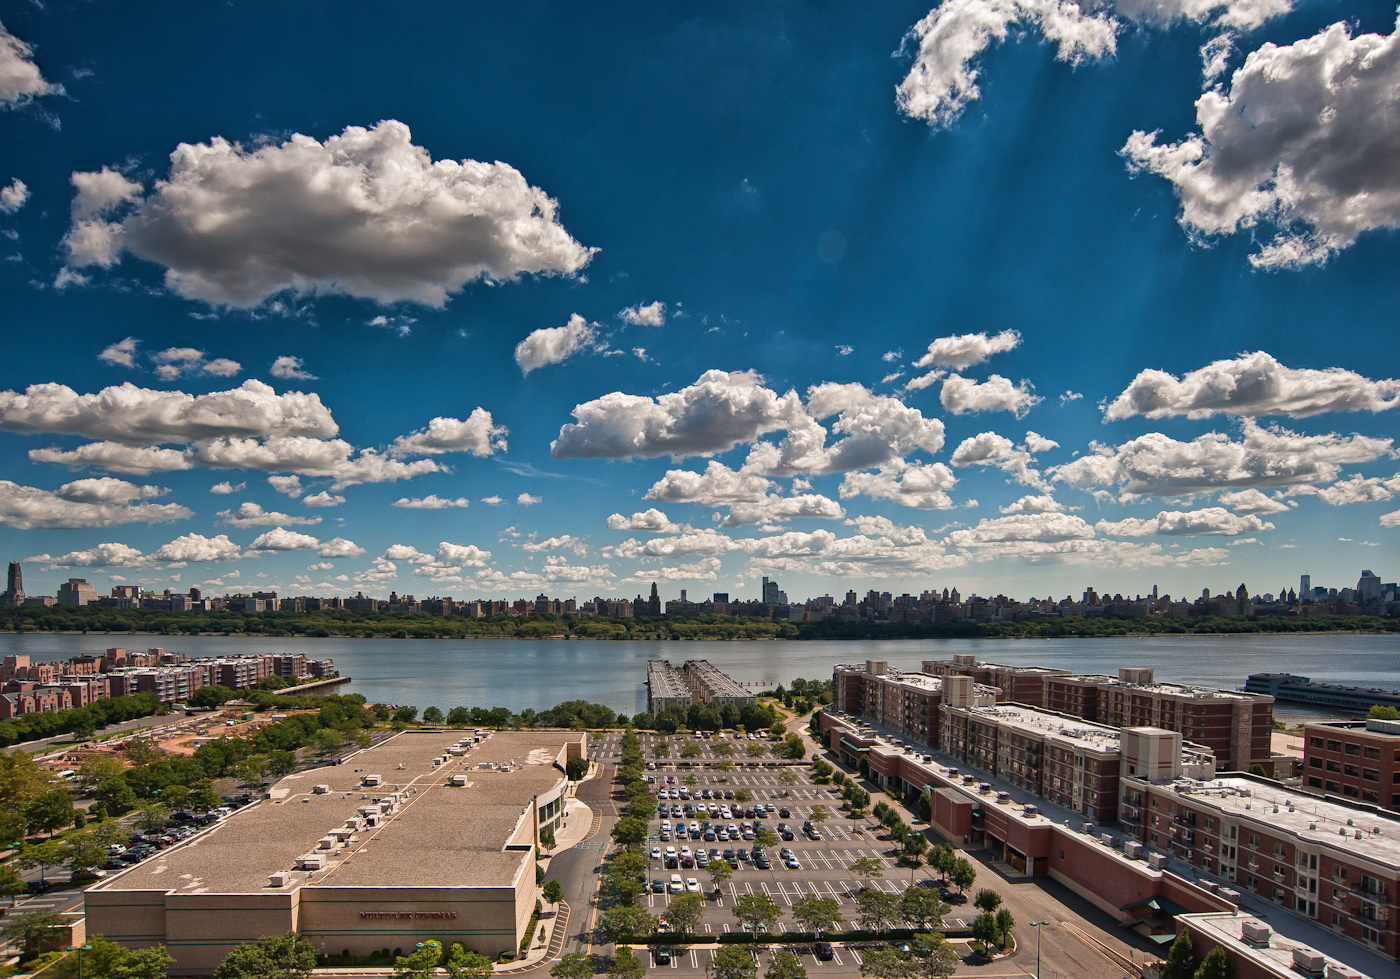 Summer clouds over the Hudson